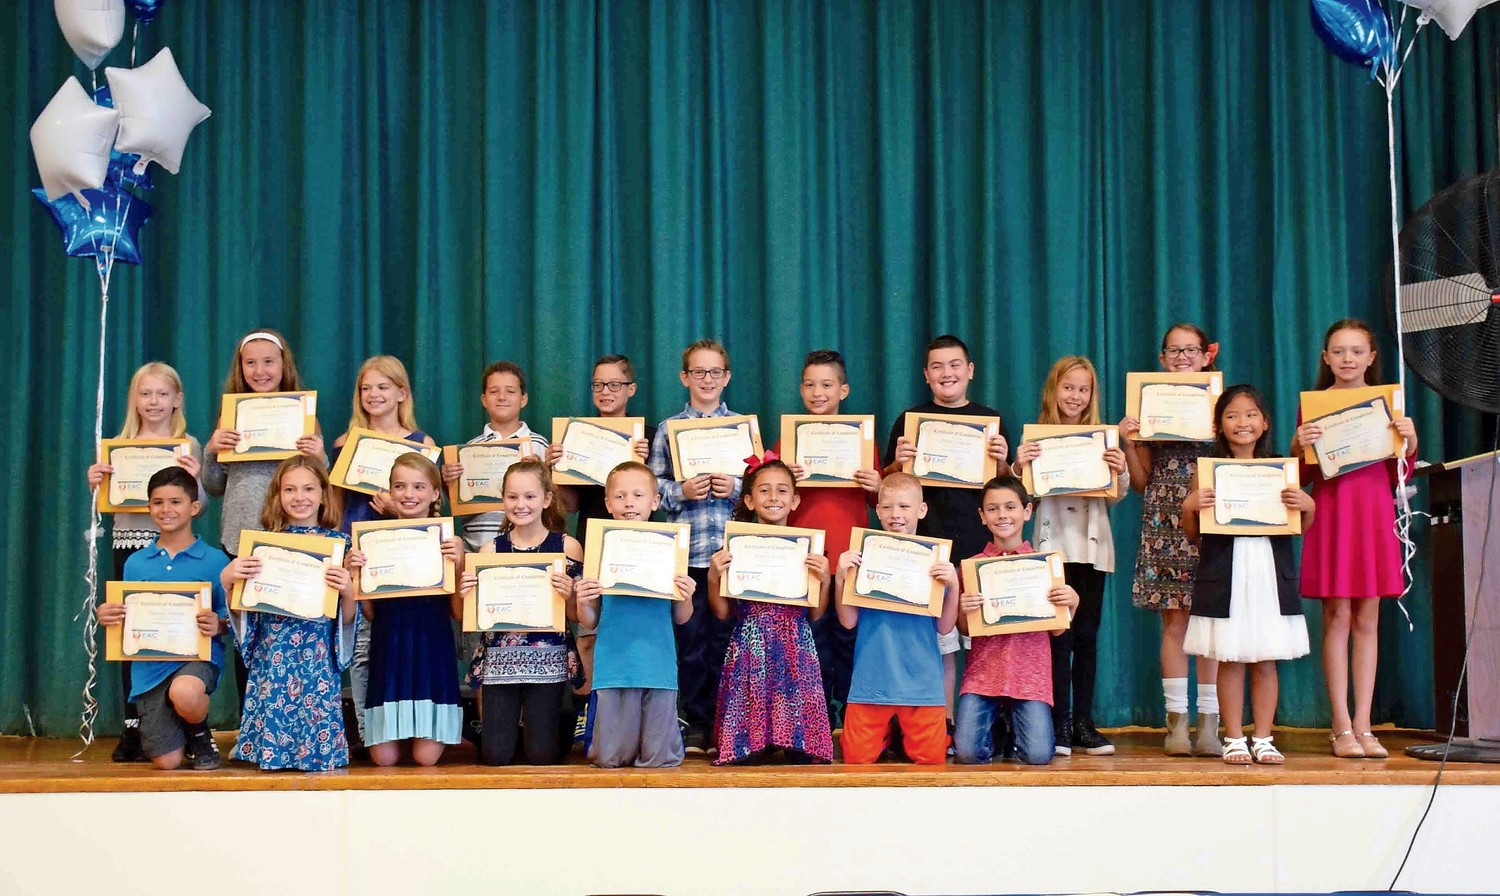 20 students from East Broadway Elementary School were named peer mediators during a ceremony on Oct. 13.